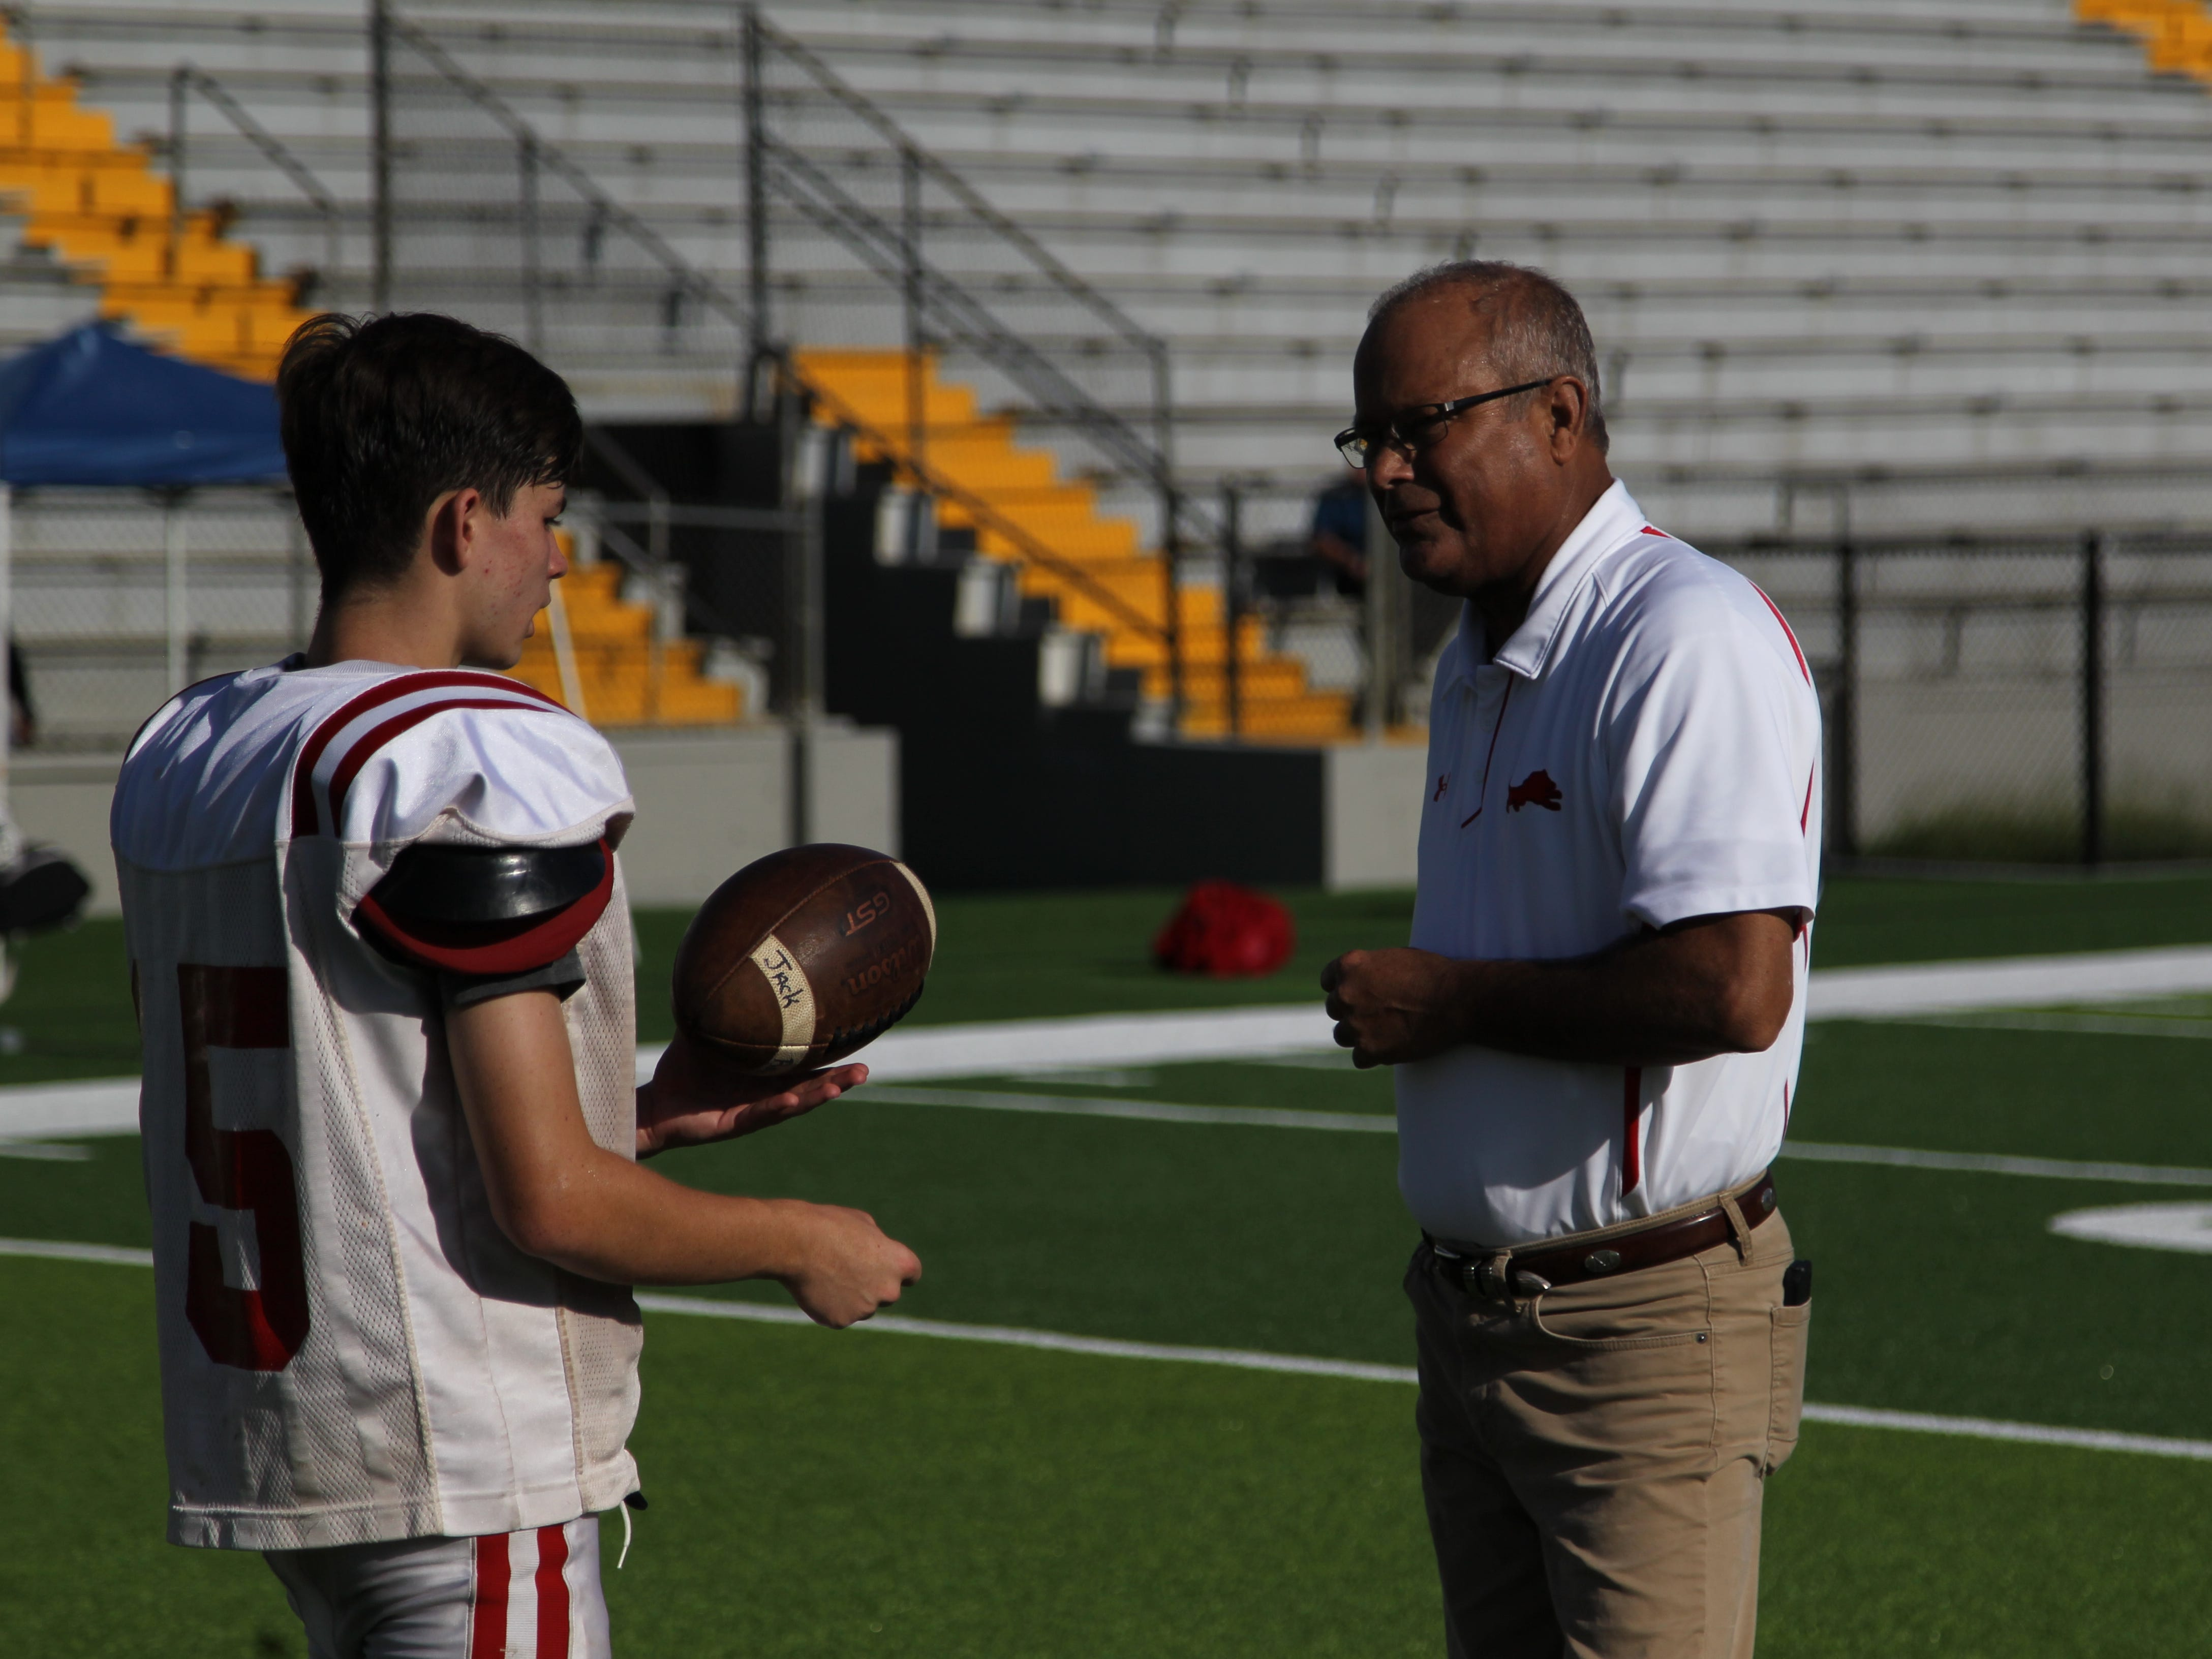 Leon athletic director Mark Feely works with a punter as Leon's football team practices at Gene Cox Stadium on its new turf field on Tuesday, Aug. 7, 2018. Formerly Capital Stadium, Cox Stadium was dedicated to legendary Leon coach Gene Cox in 1997.